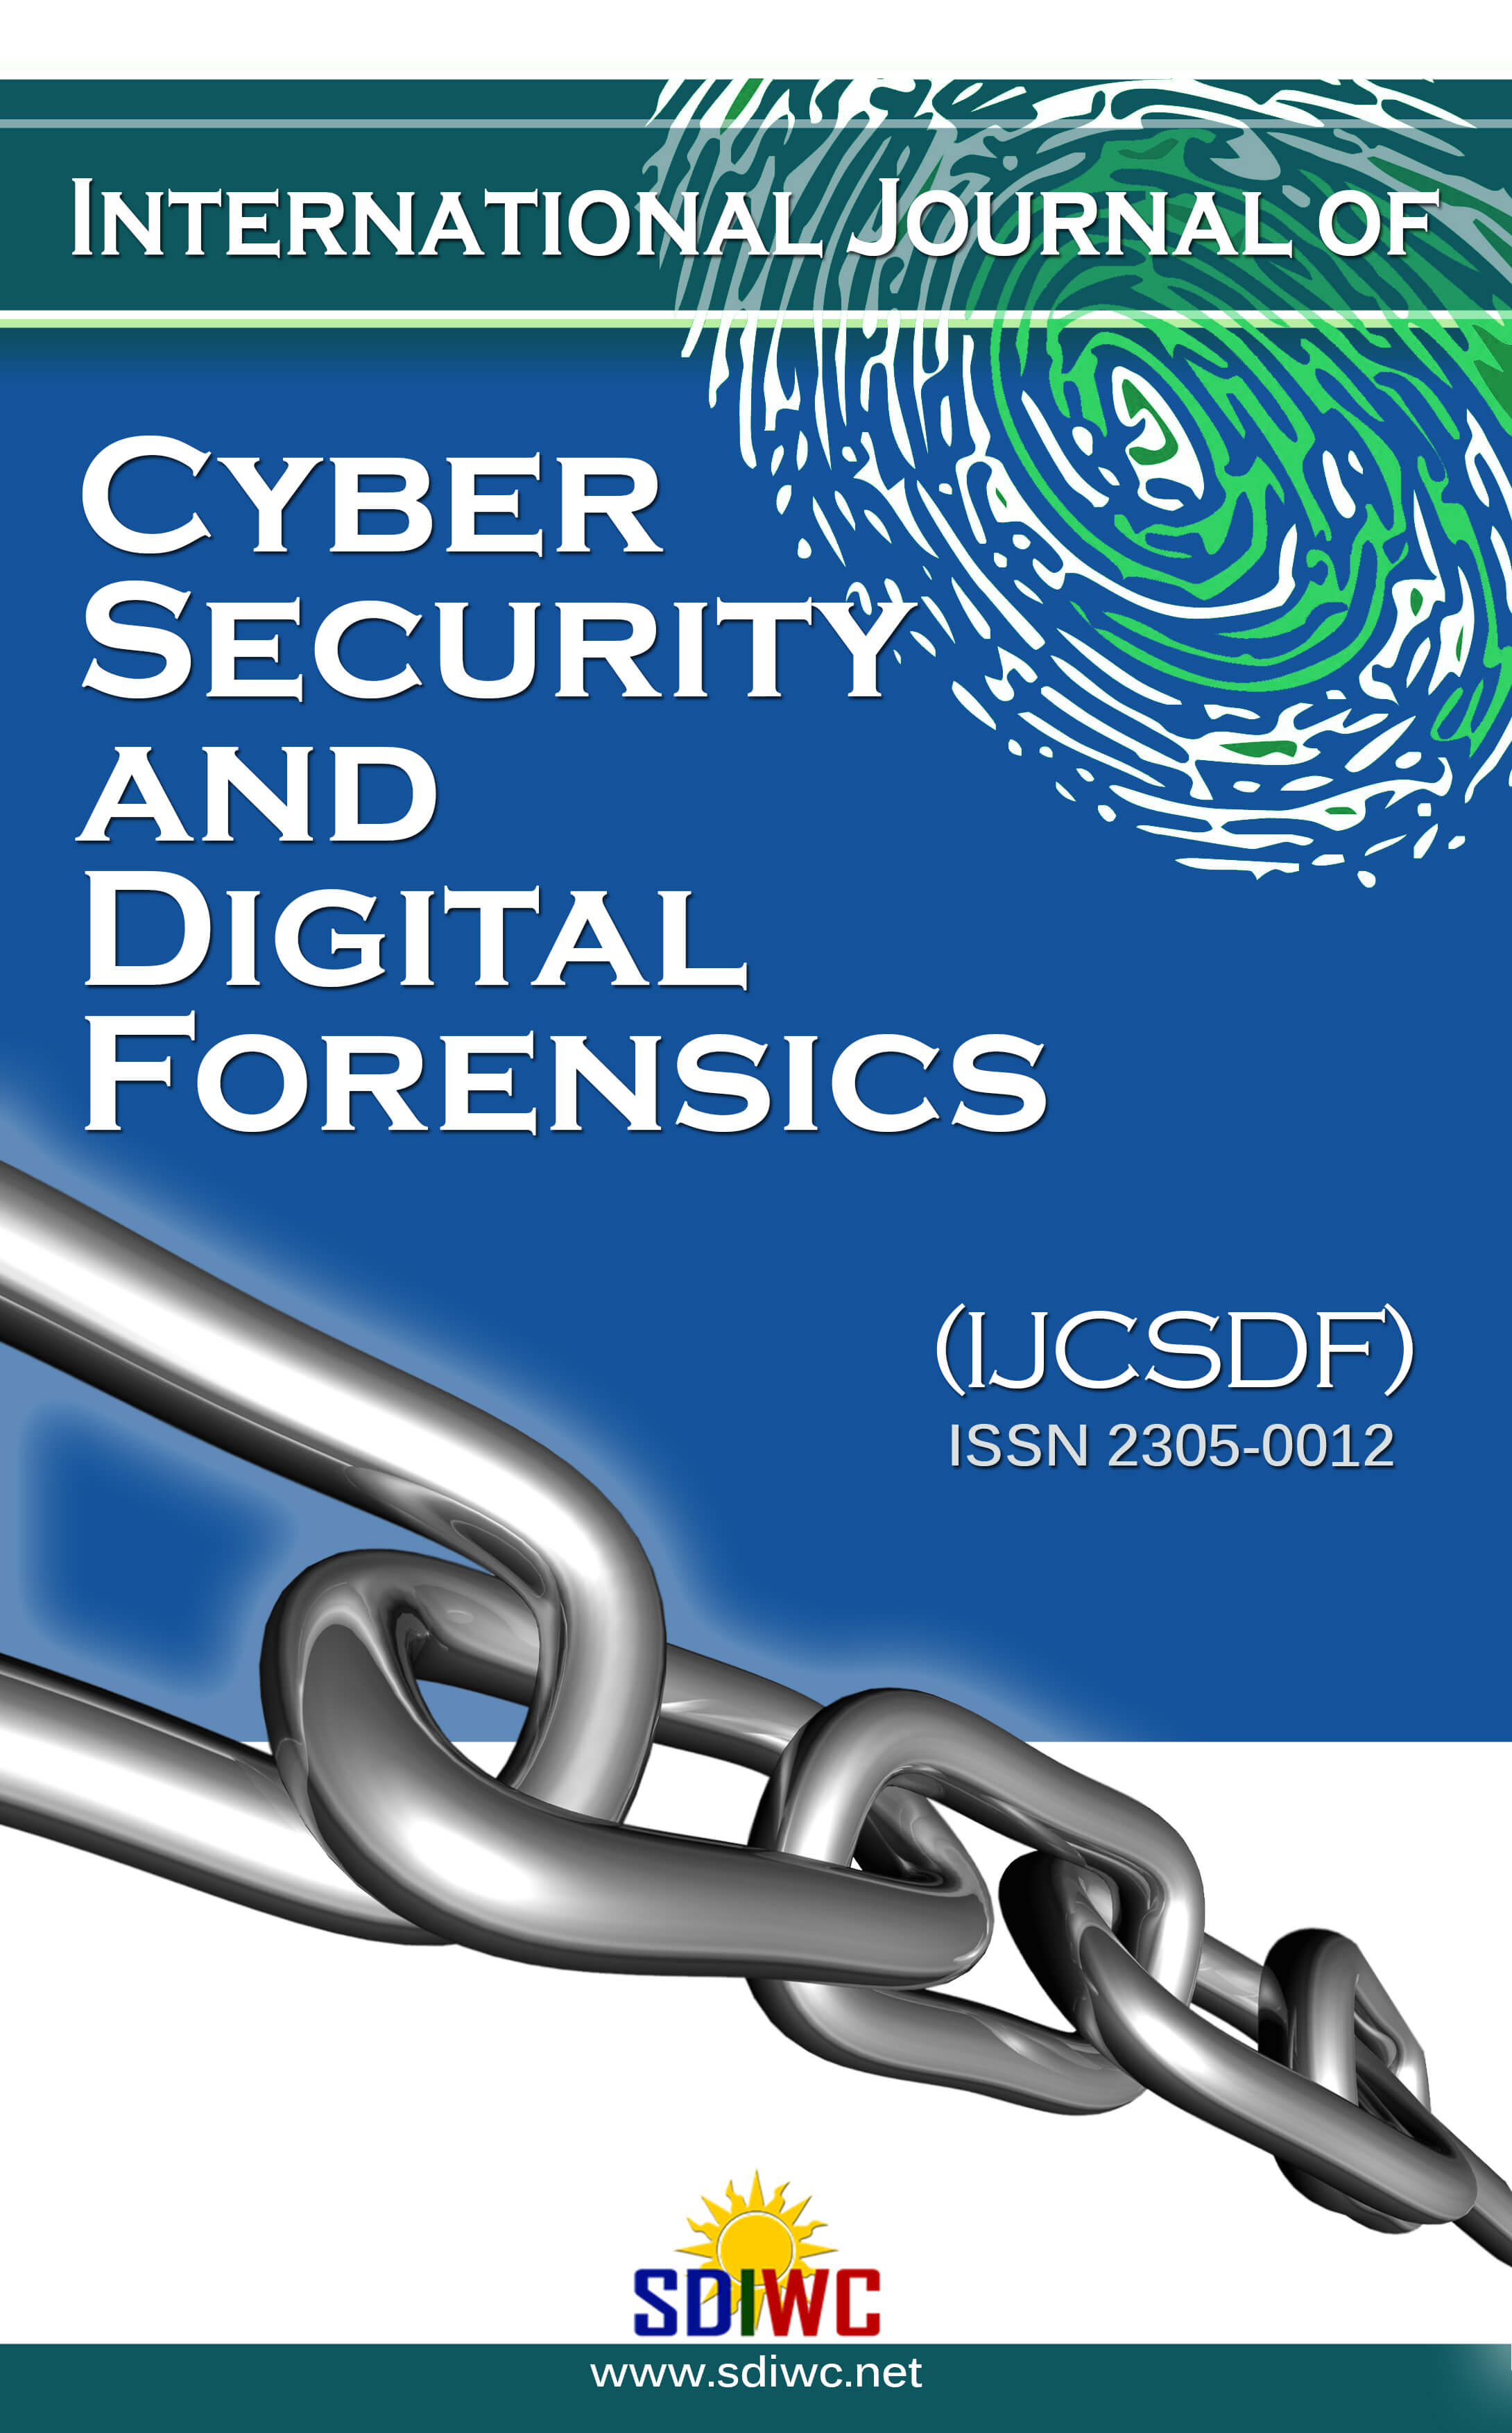 013 Research Paper Cyber Security Papers Pdf Ijcsdf Amazing On Full